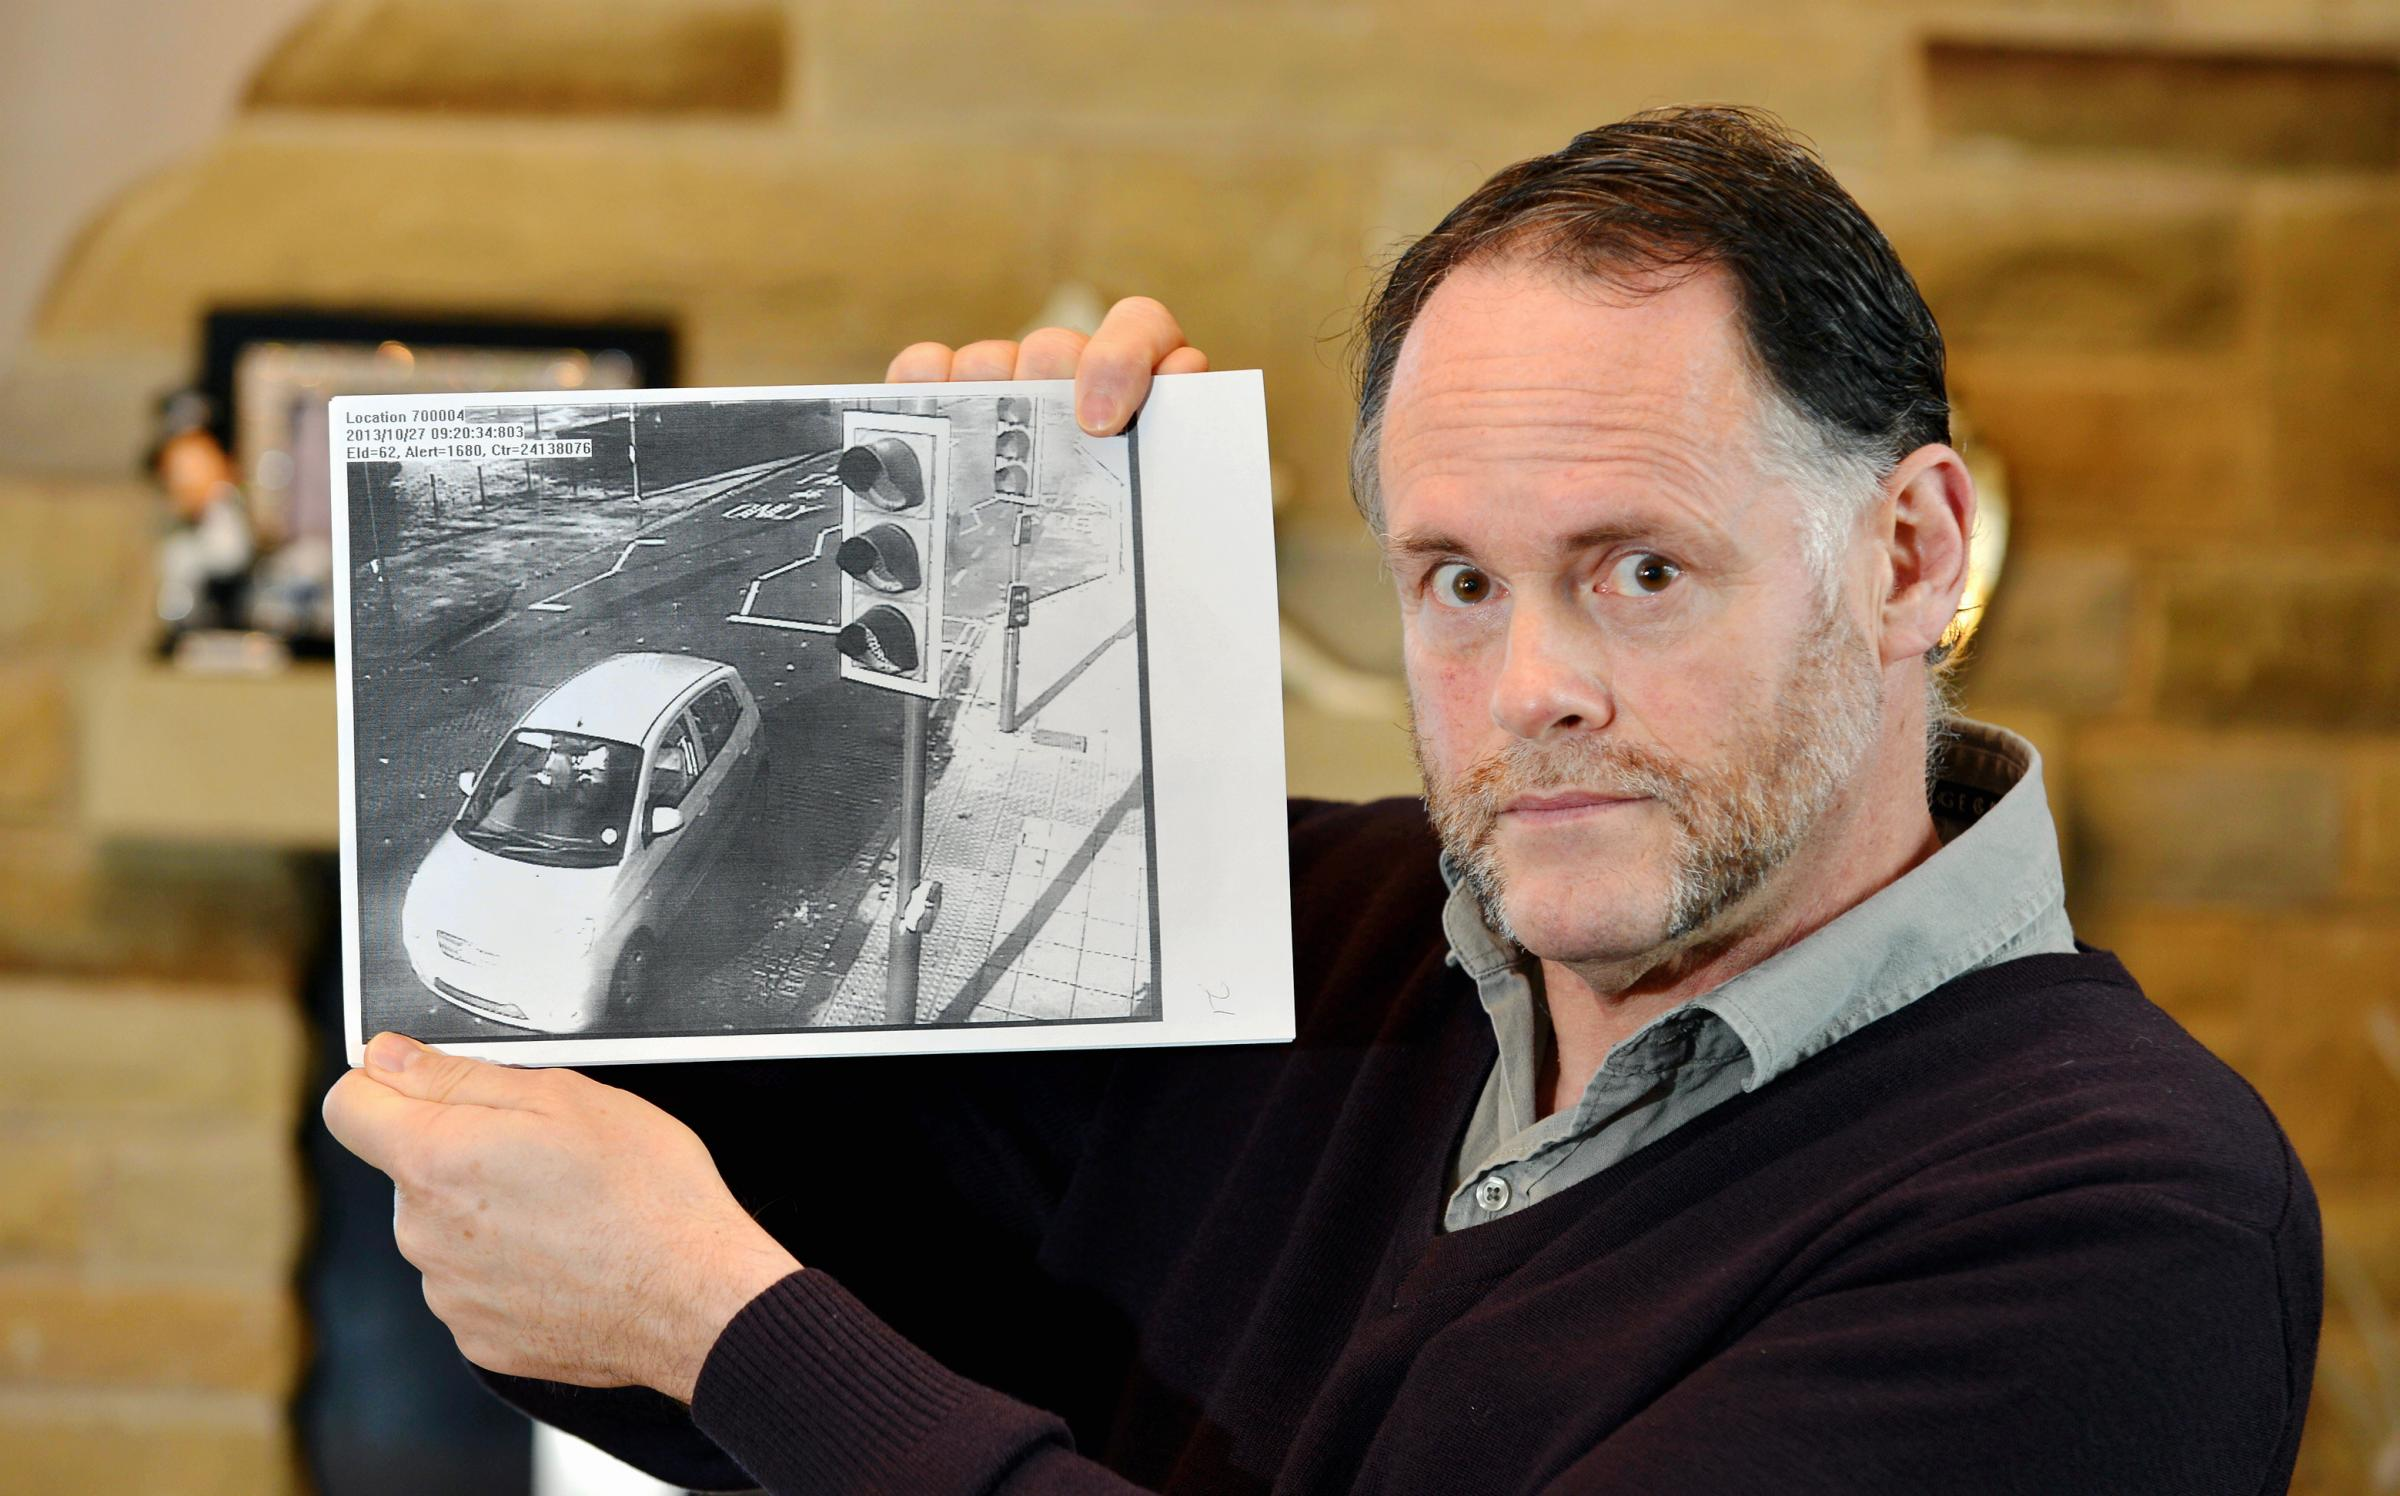 Nigel Dixon with the bus lane camera image of his car, as previously reported in the Telegraph & Argus